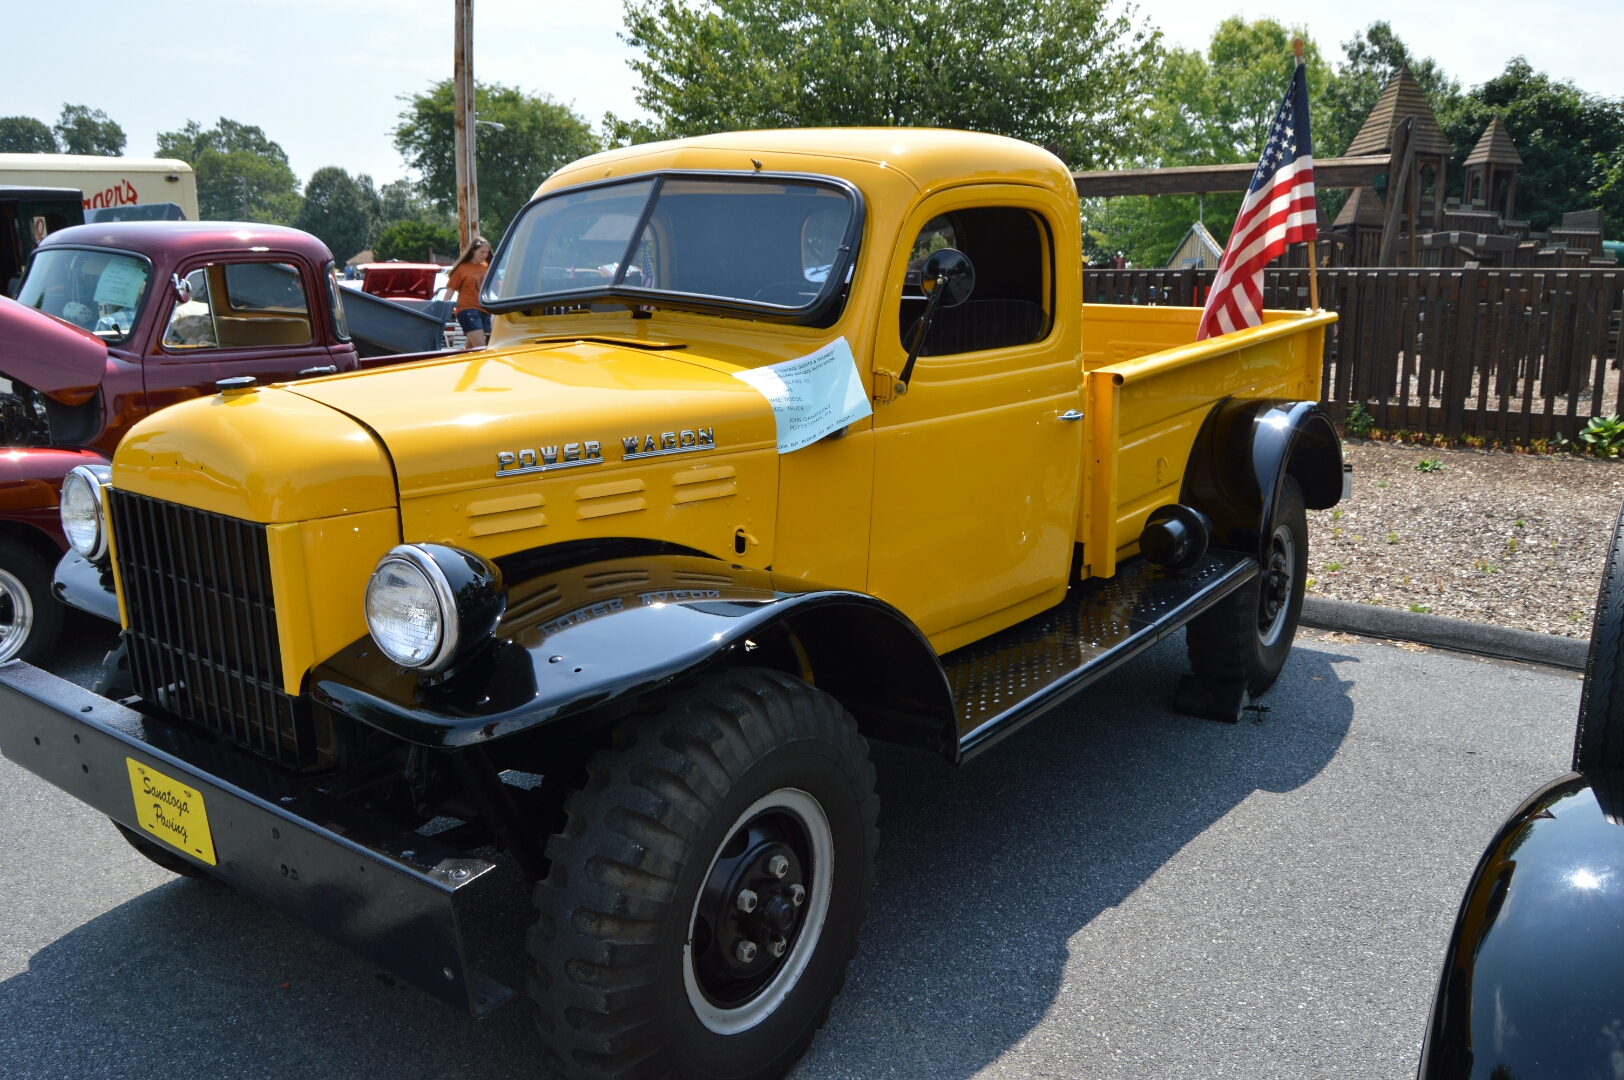 The Dodge Power Wagon was introduced in 1946.